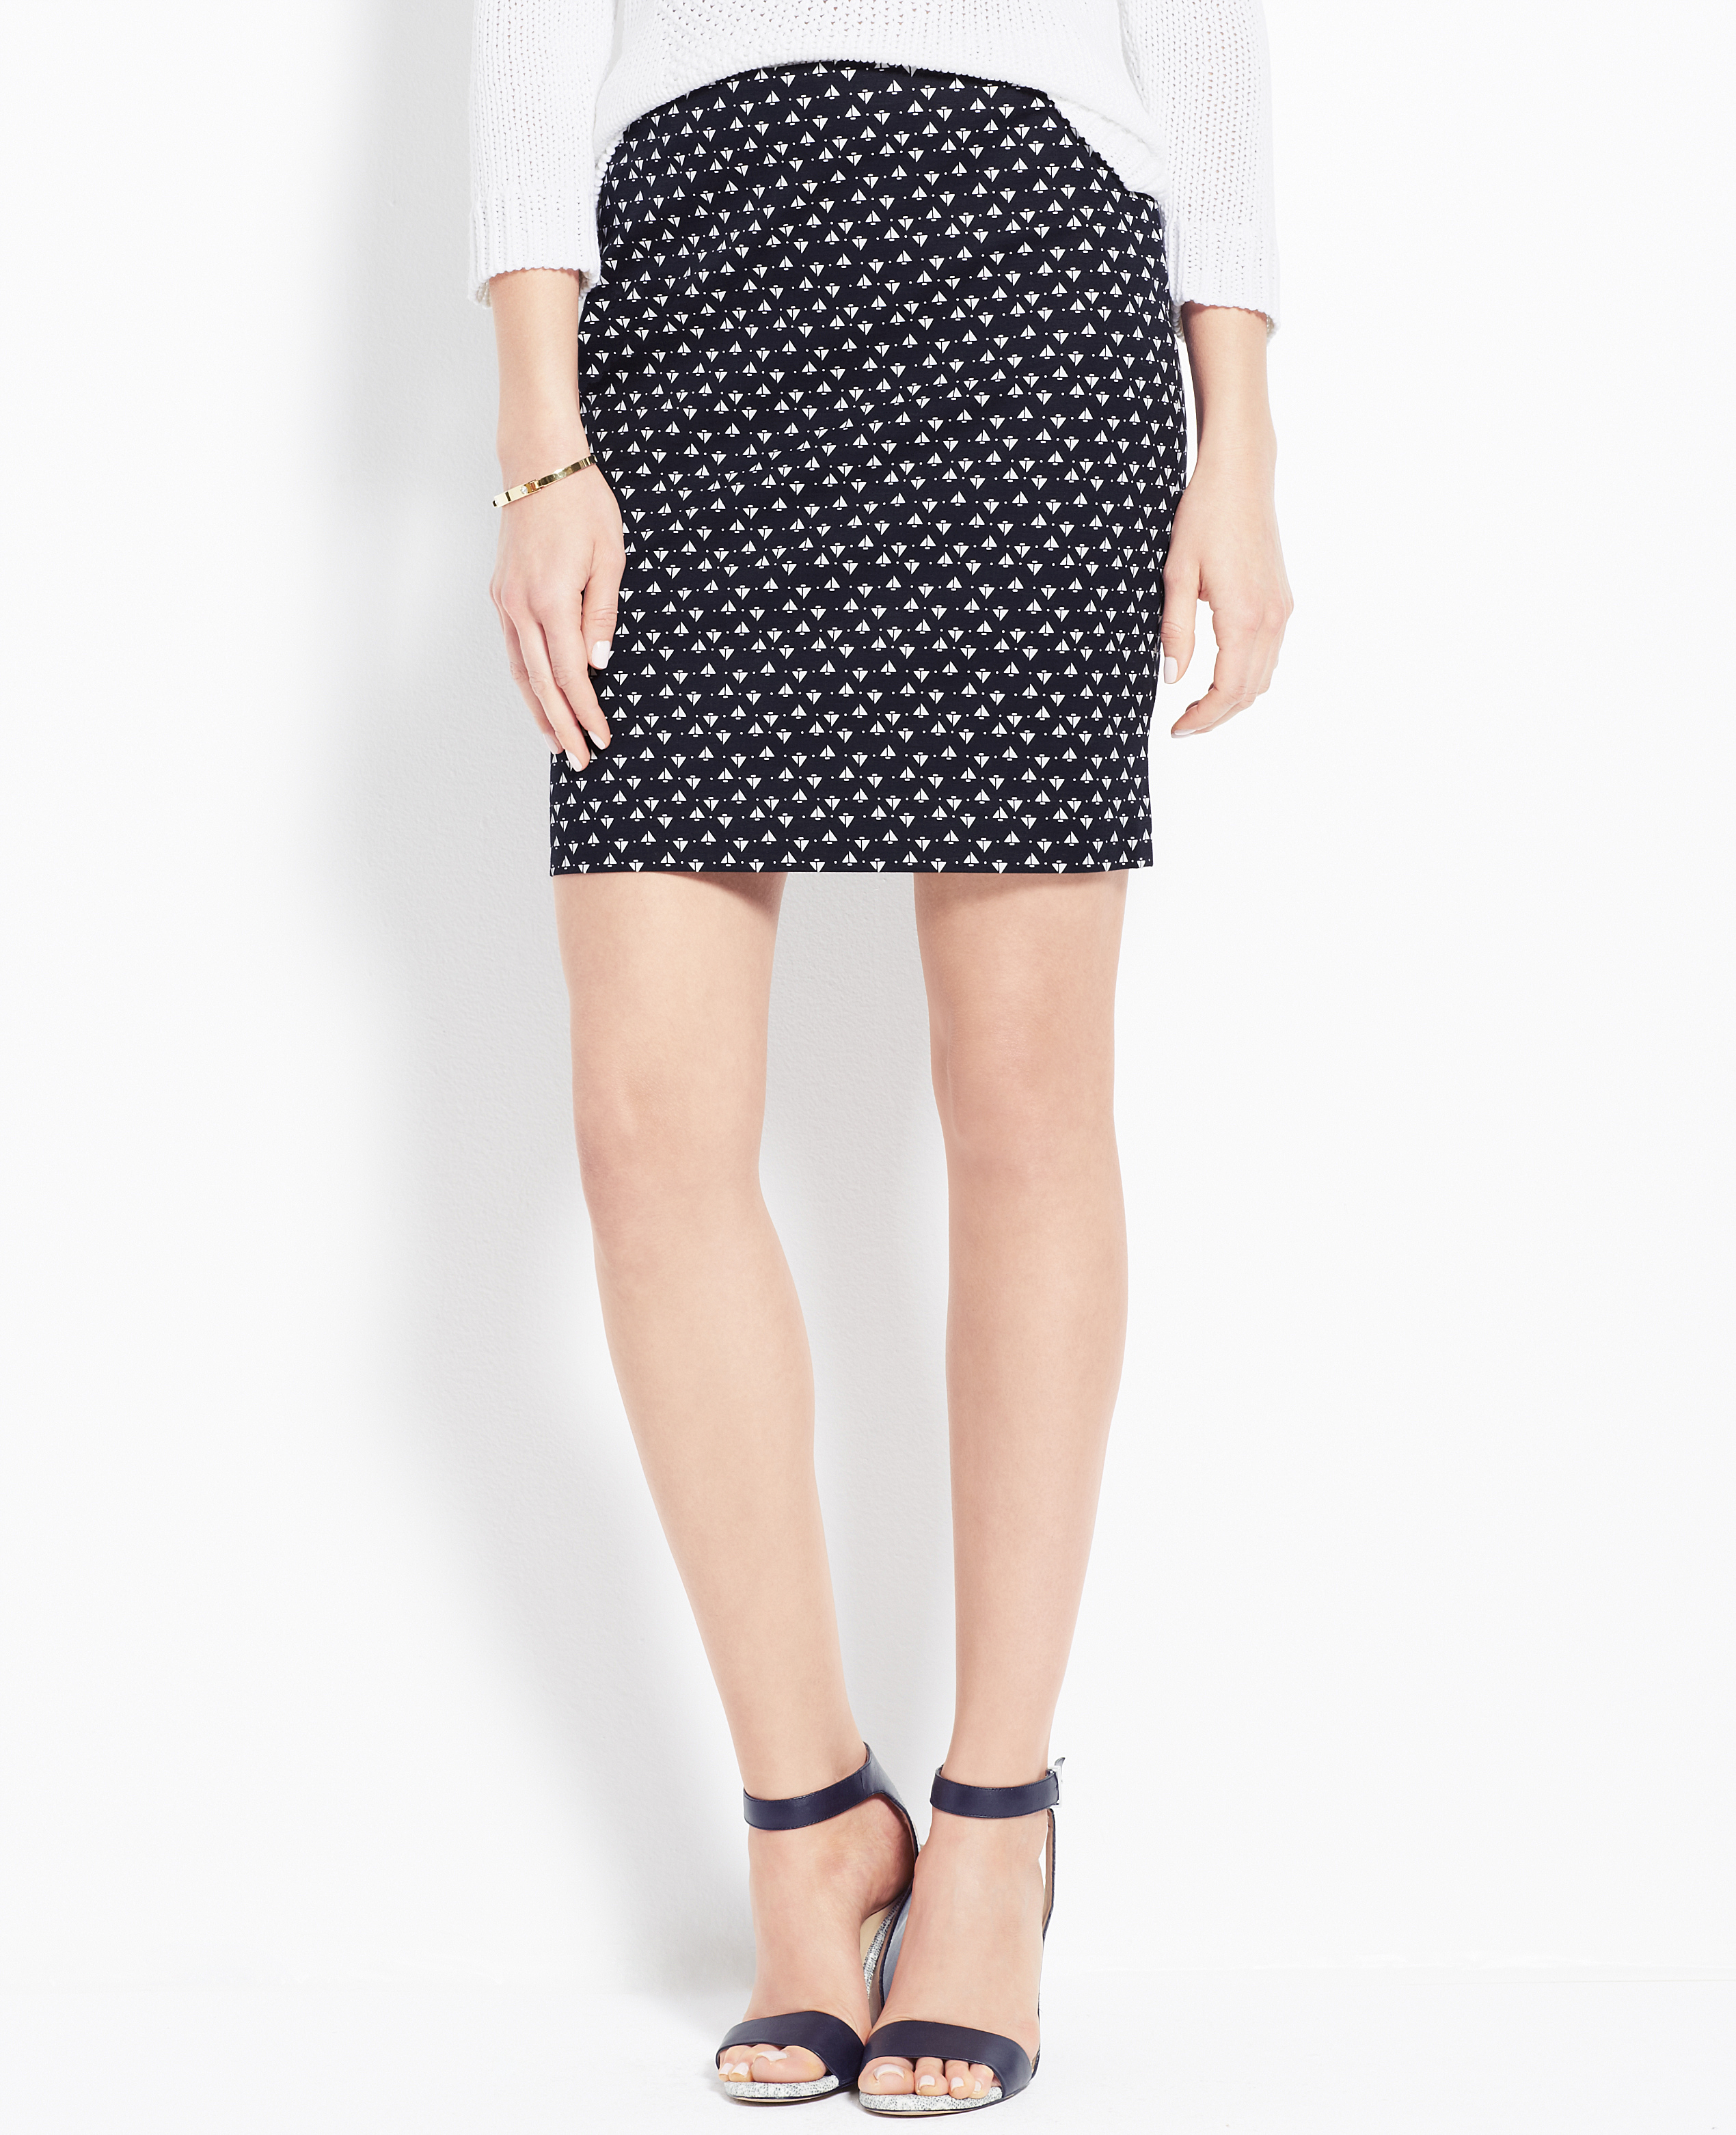 Skirts. Make a statement with chic skirt styles from from Ann Taylor. For staple pieces that elevate your outfit in any season, browse pencil skirts in ponte knit, doubleweave, tweed, and more textures.